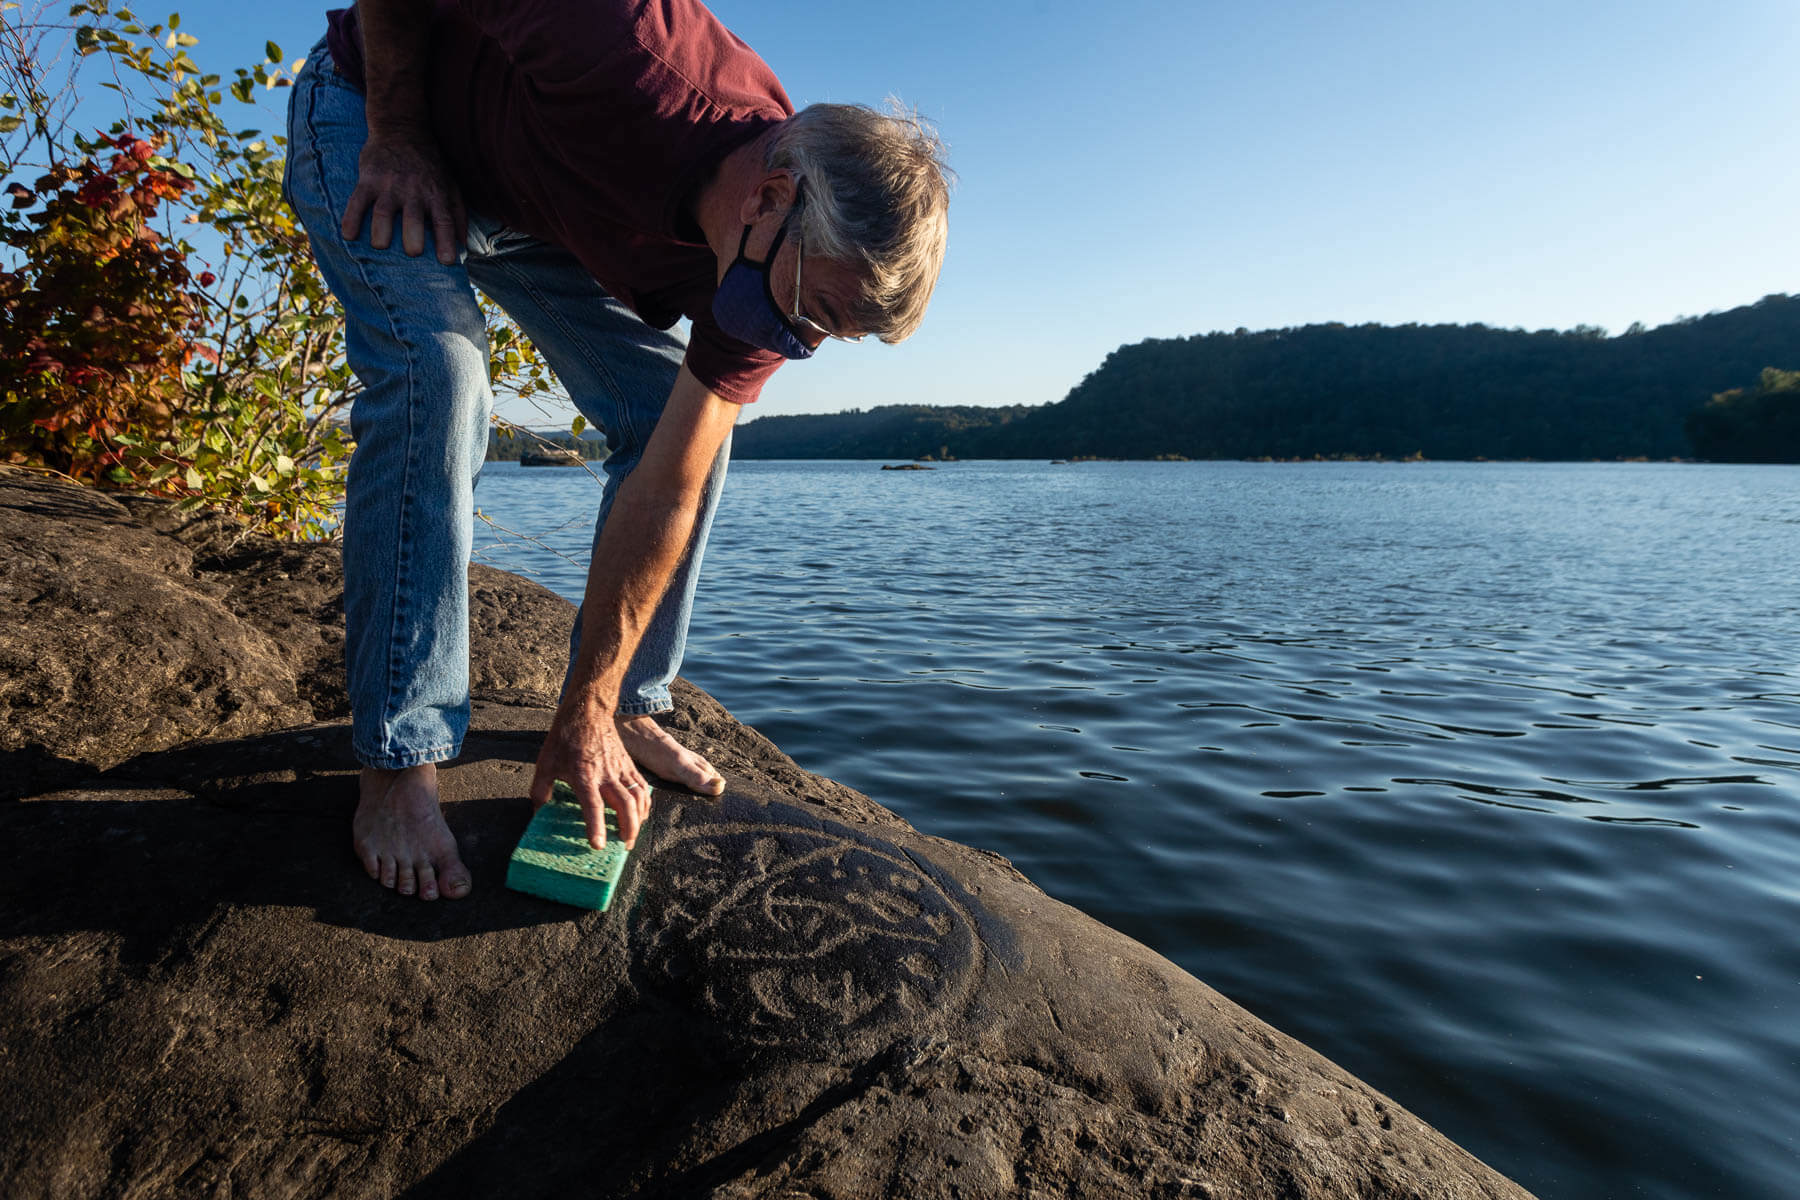 Petroglyph expert bends down to a carving in a river